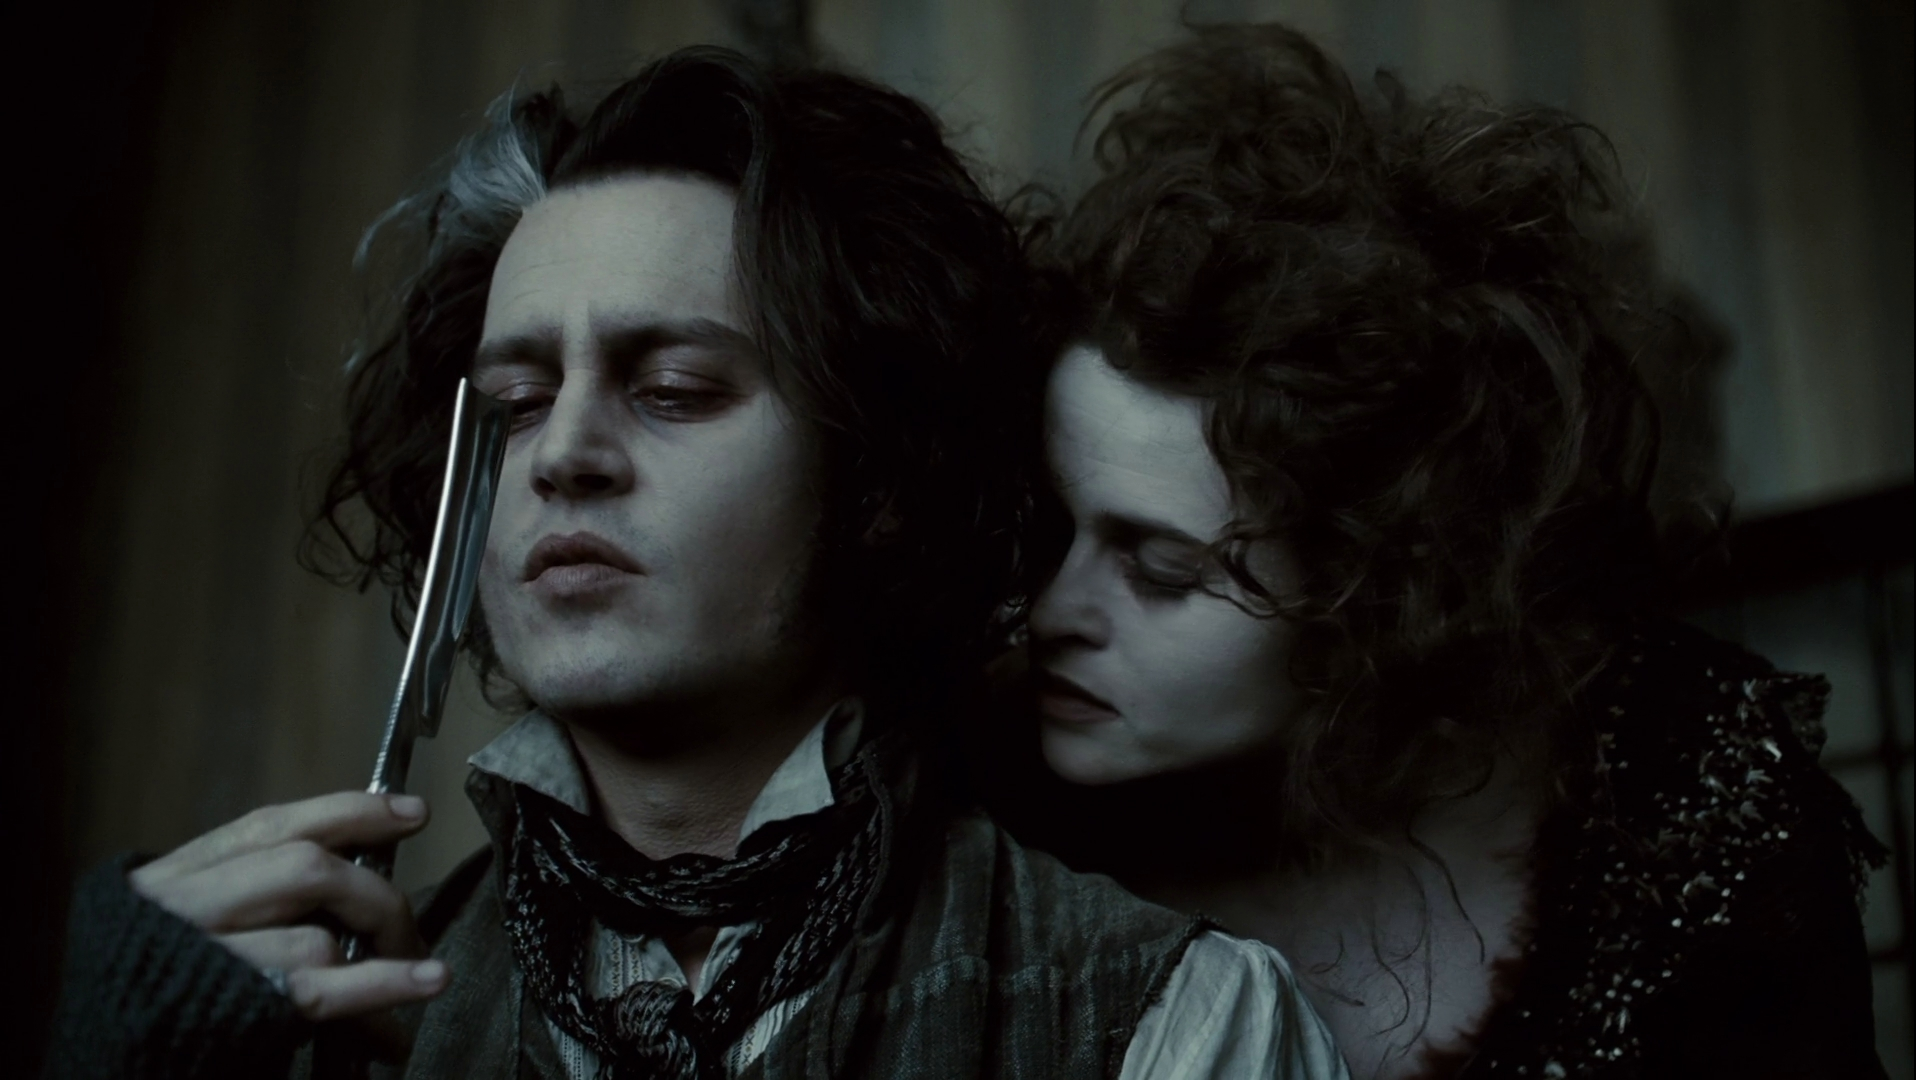 Sweeney-Todd-and-Mrs-Lovett-sweeney-todd-28458970-1916-1080